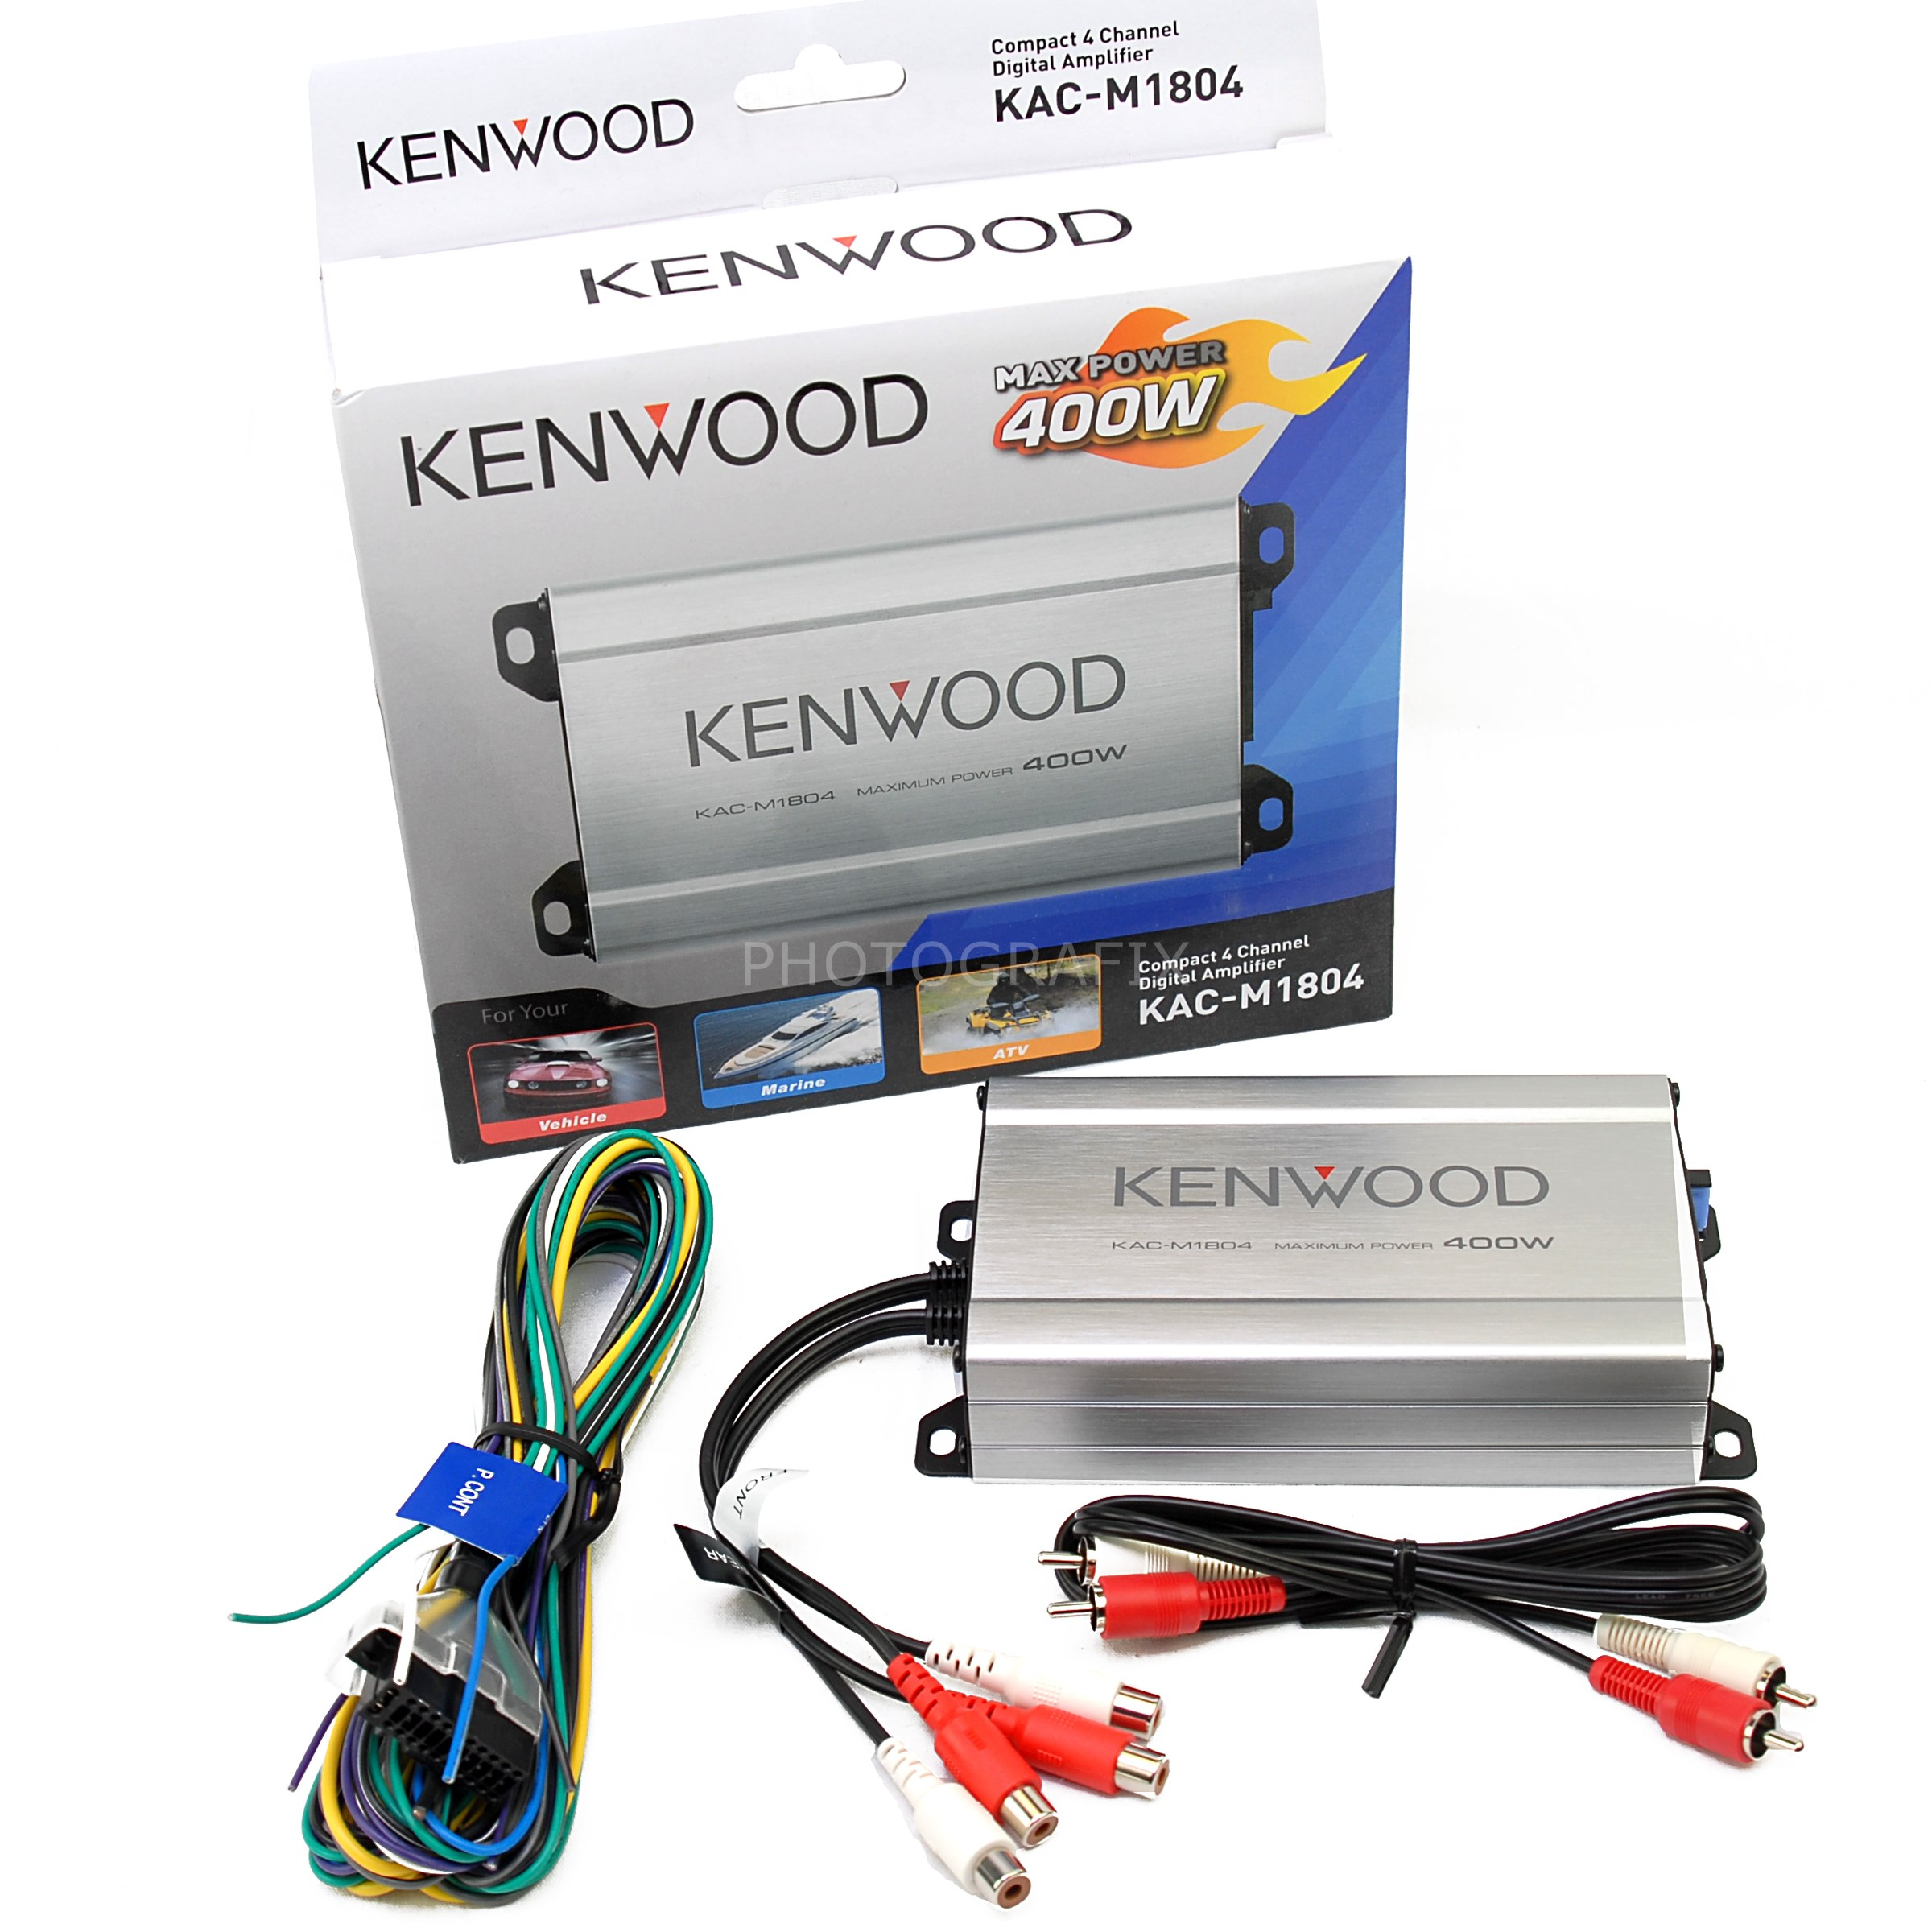 kenkacm1804__itemimageurl1 kenwood kac m1804 compact 4 channel digital car boat or motorcycle kenwood kac m3004 wiring diagram at reclaimingppi.co